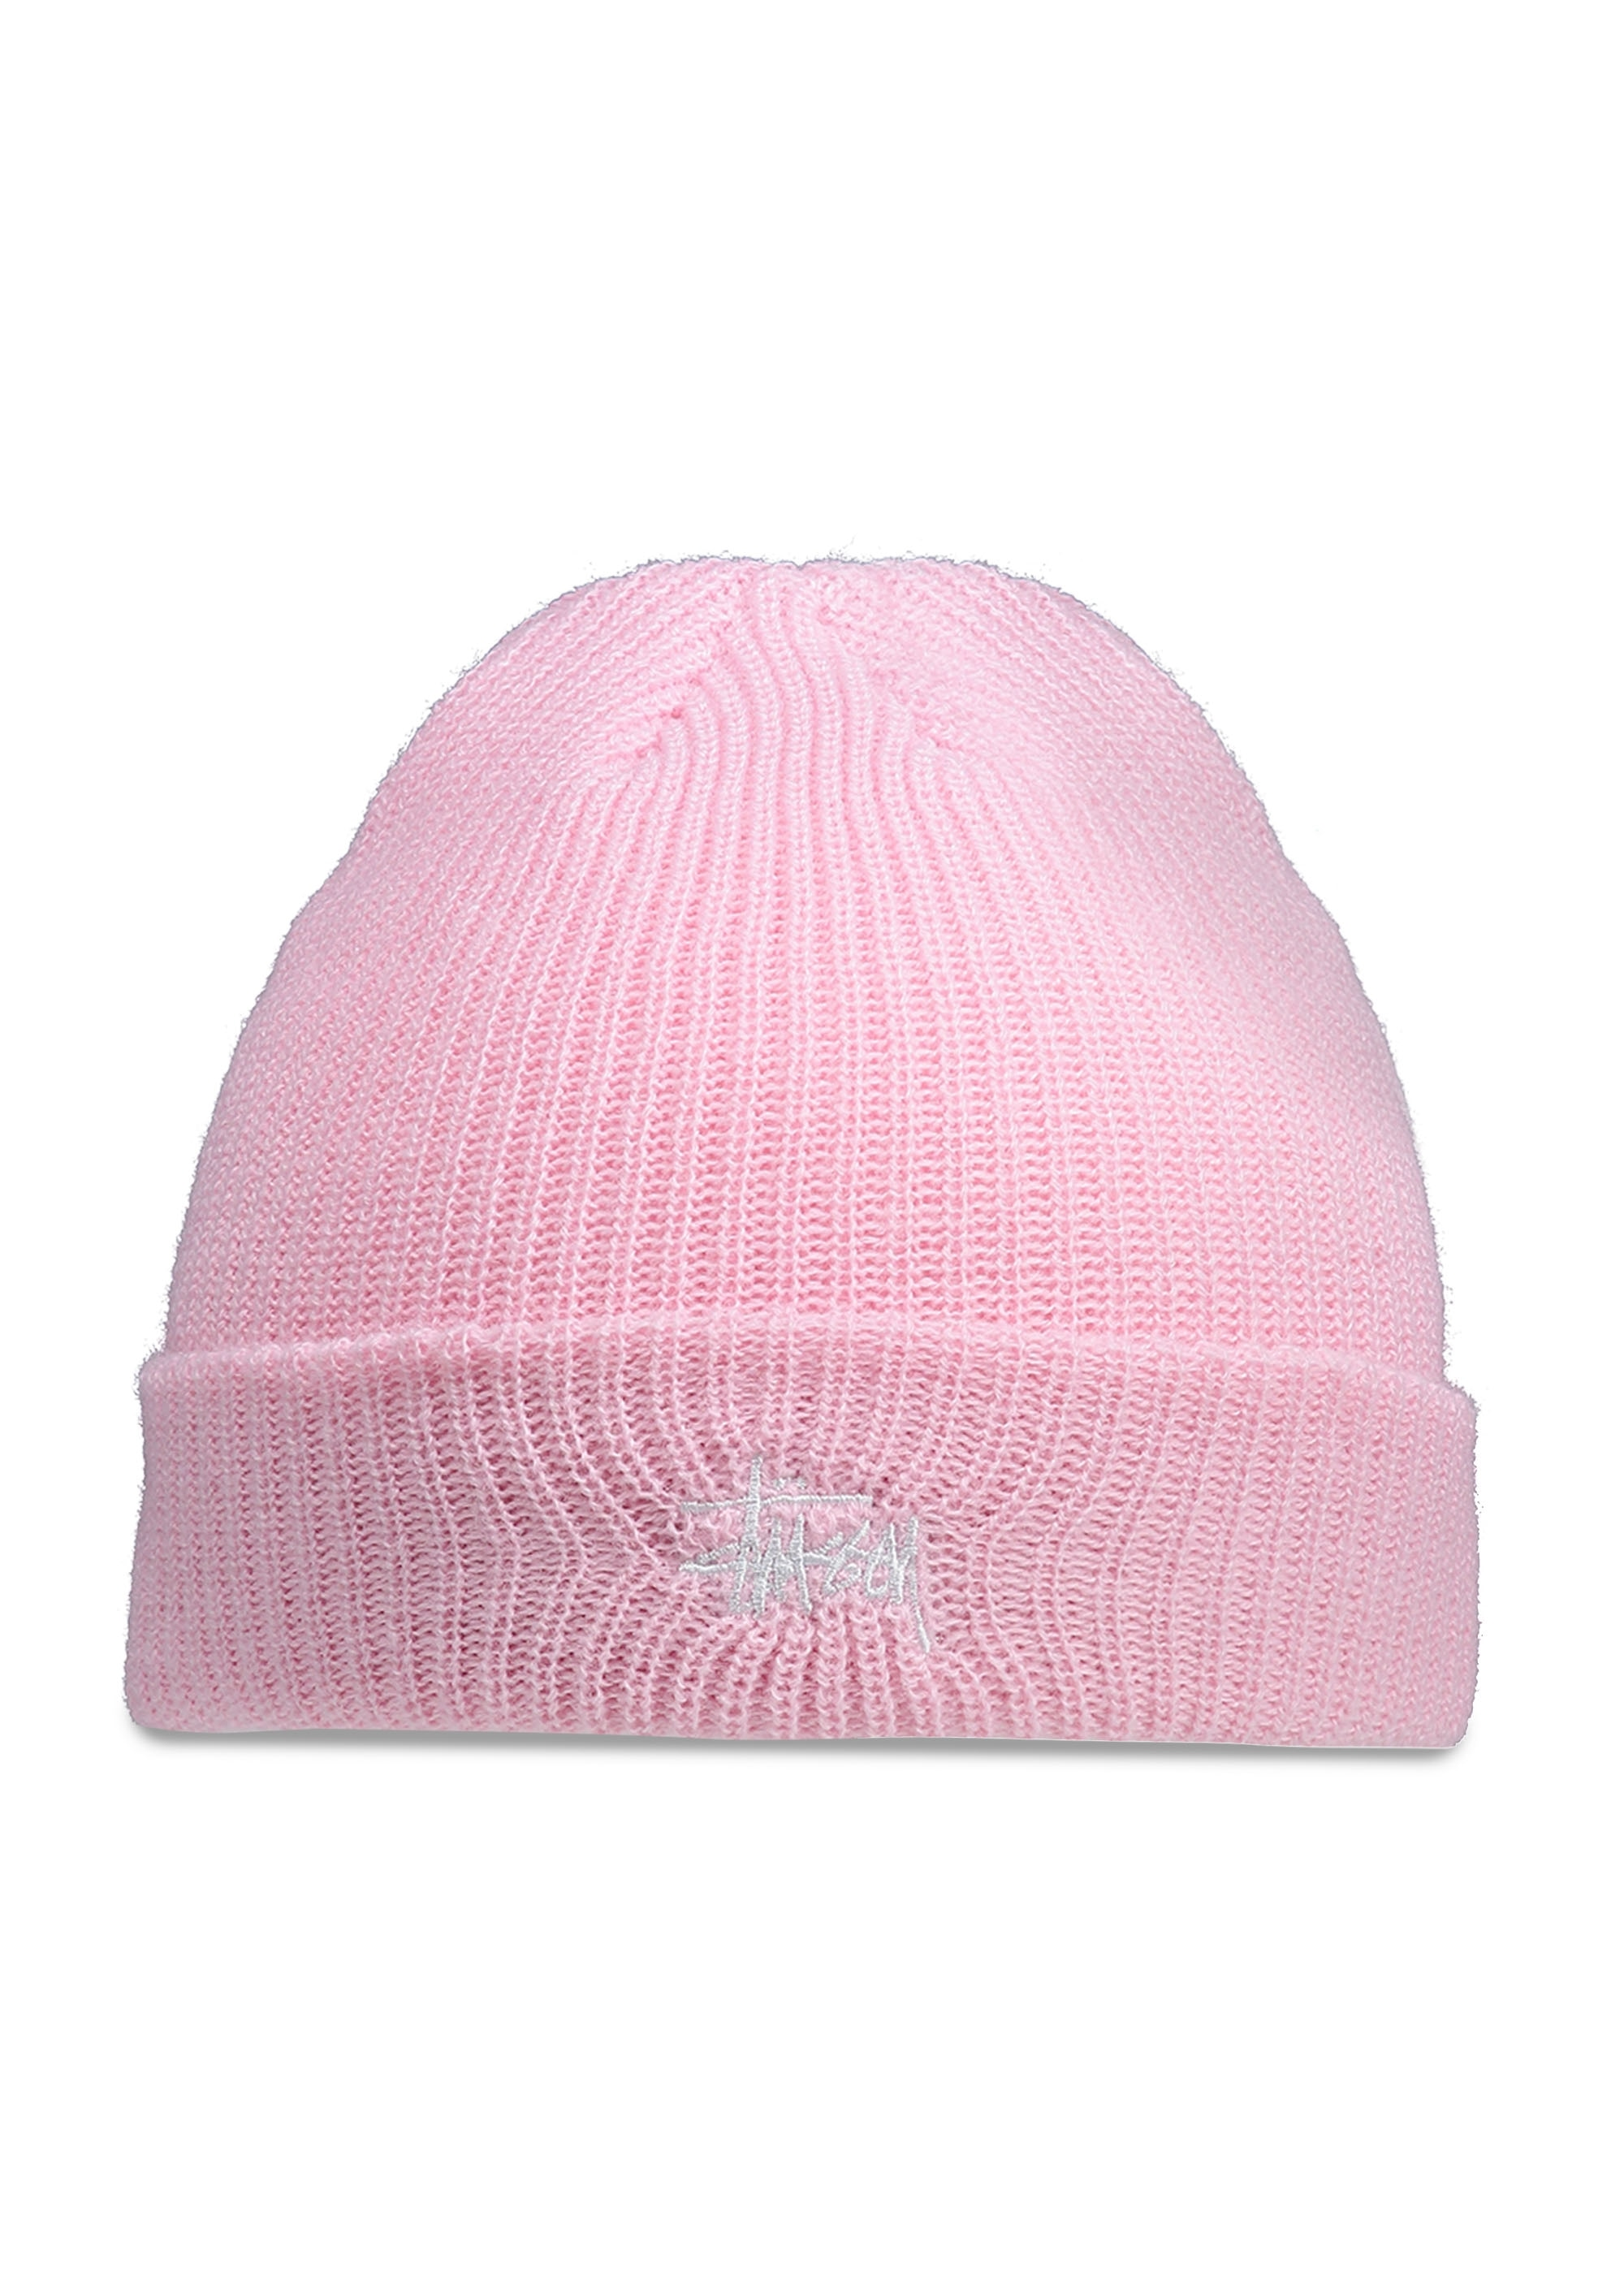 Stussy Basic Cuff Beanie - Pink - Headwear from Triads UK 7e679b050